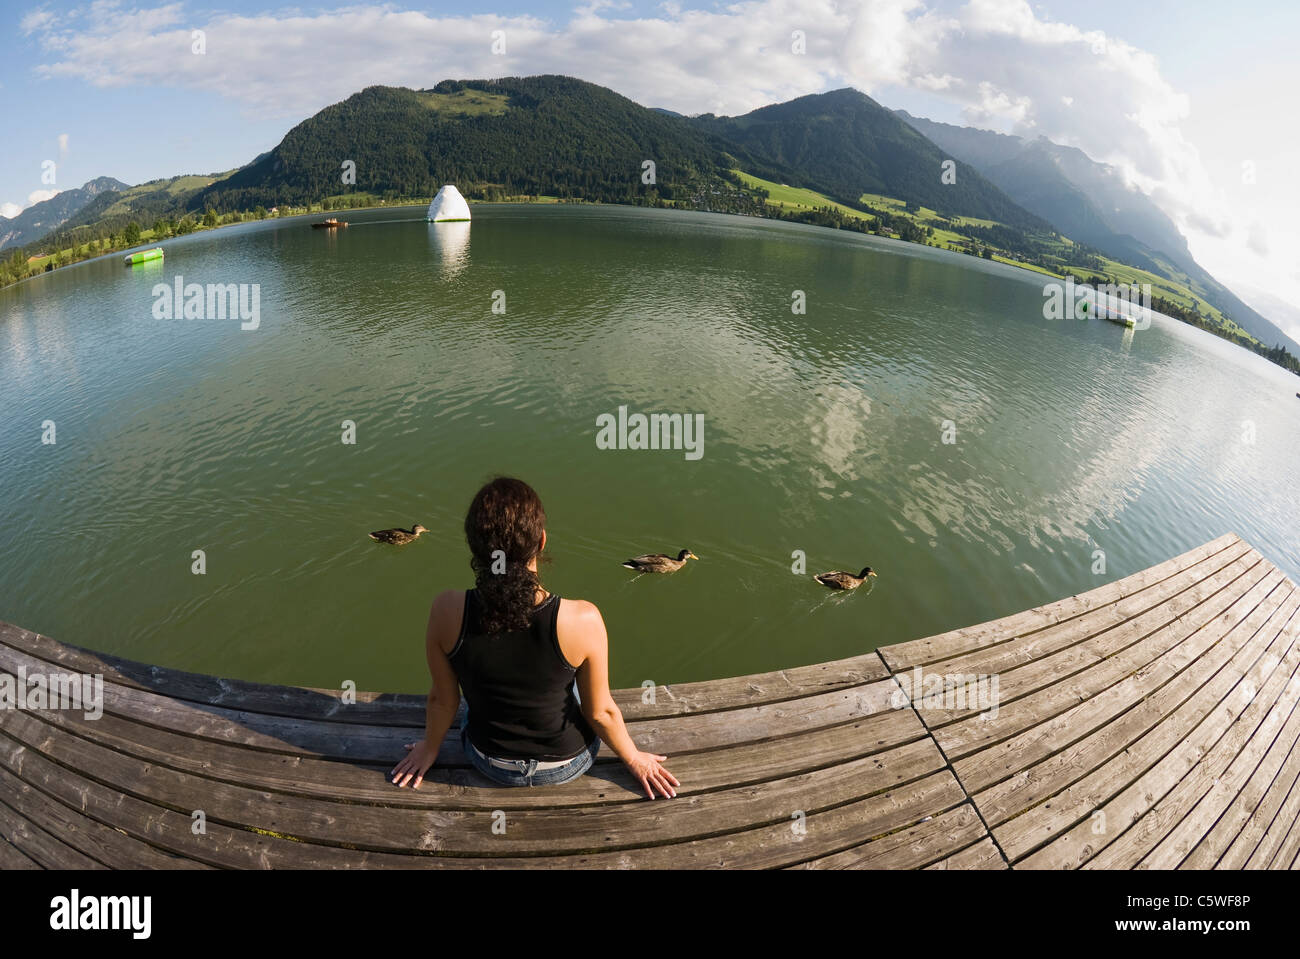 Austria, Tyrol, Walchsee, Woman relaxing on the waterfront, rear view, (fisheye) - Stock Image